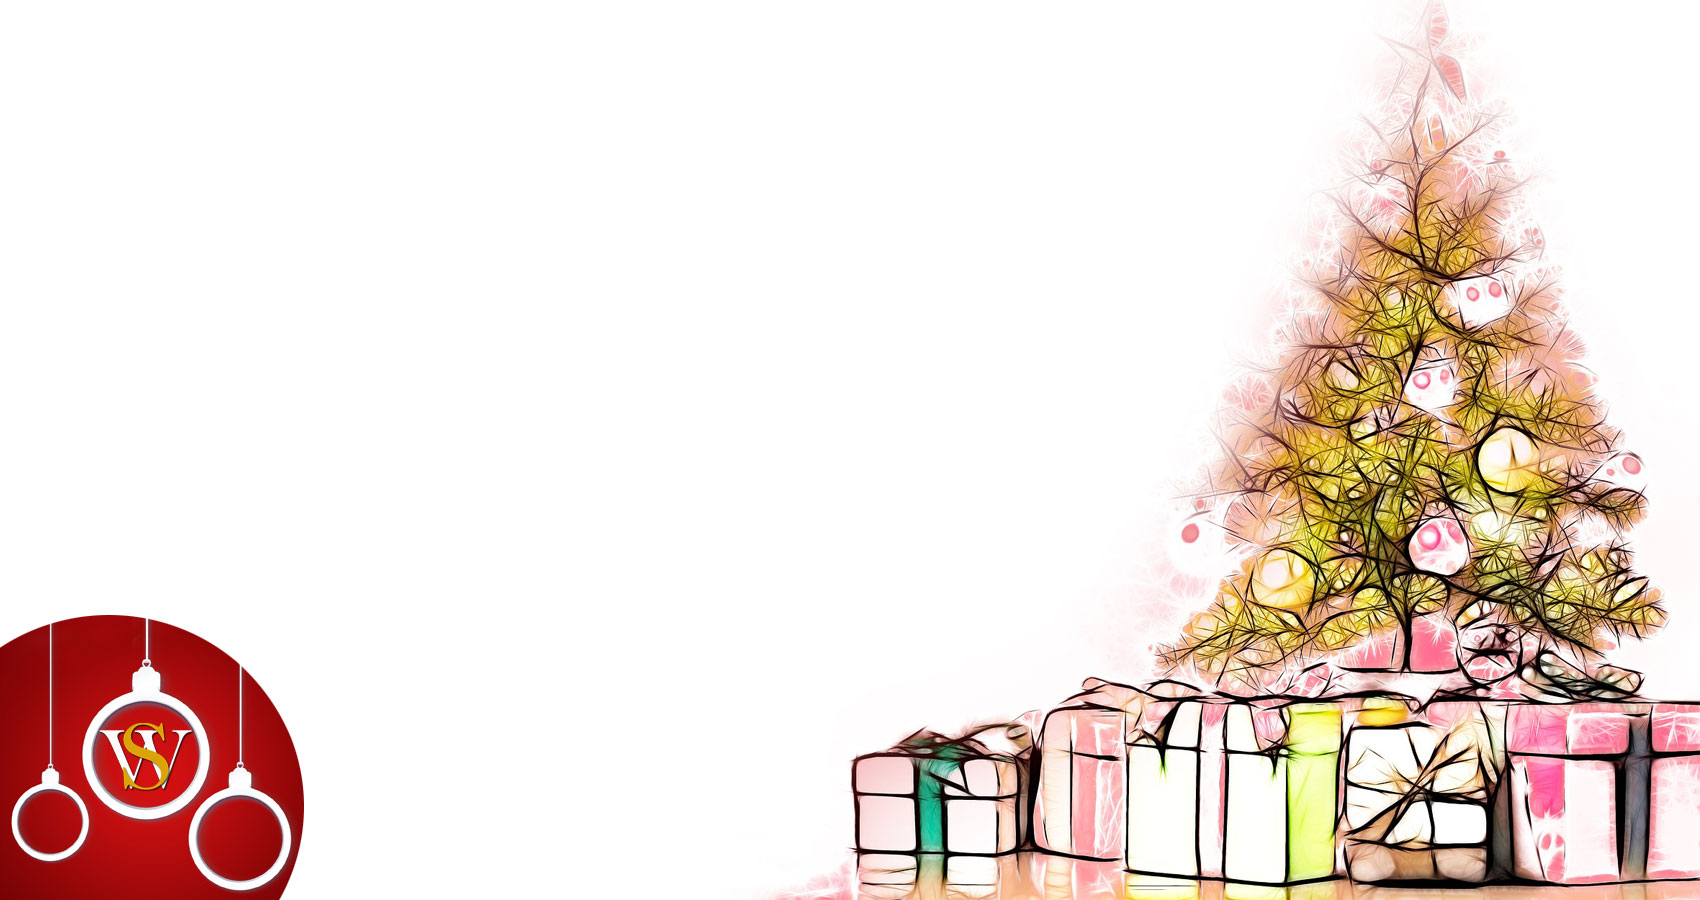 Christmas' Loving Light, written by Linda M. Crate at Spillwords.com